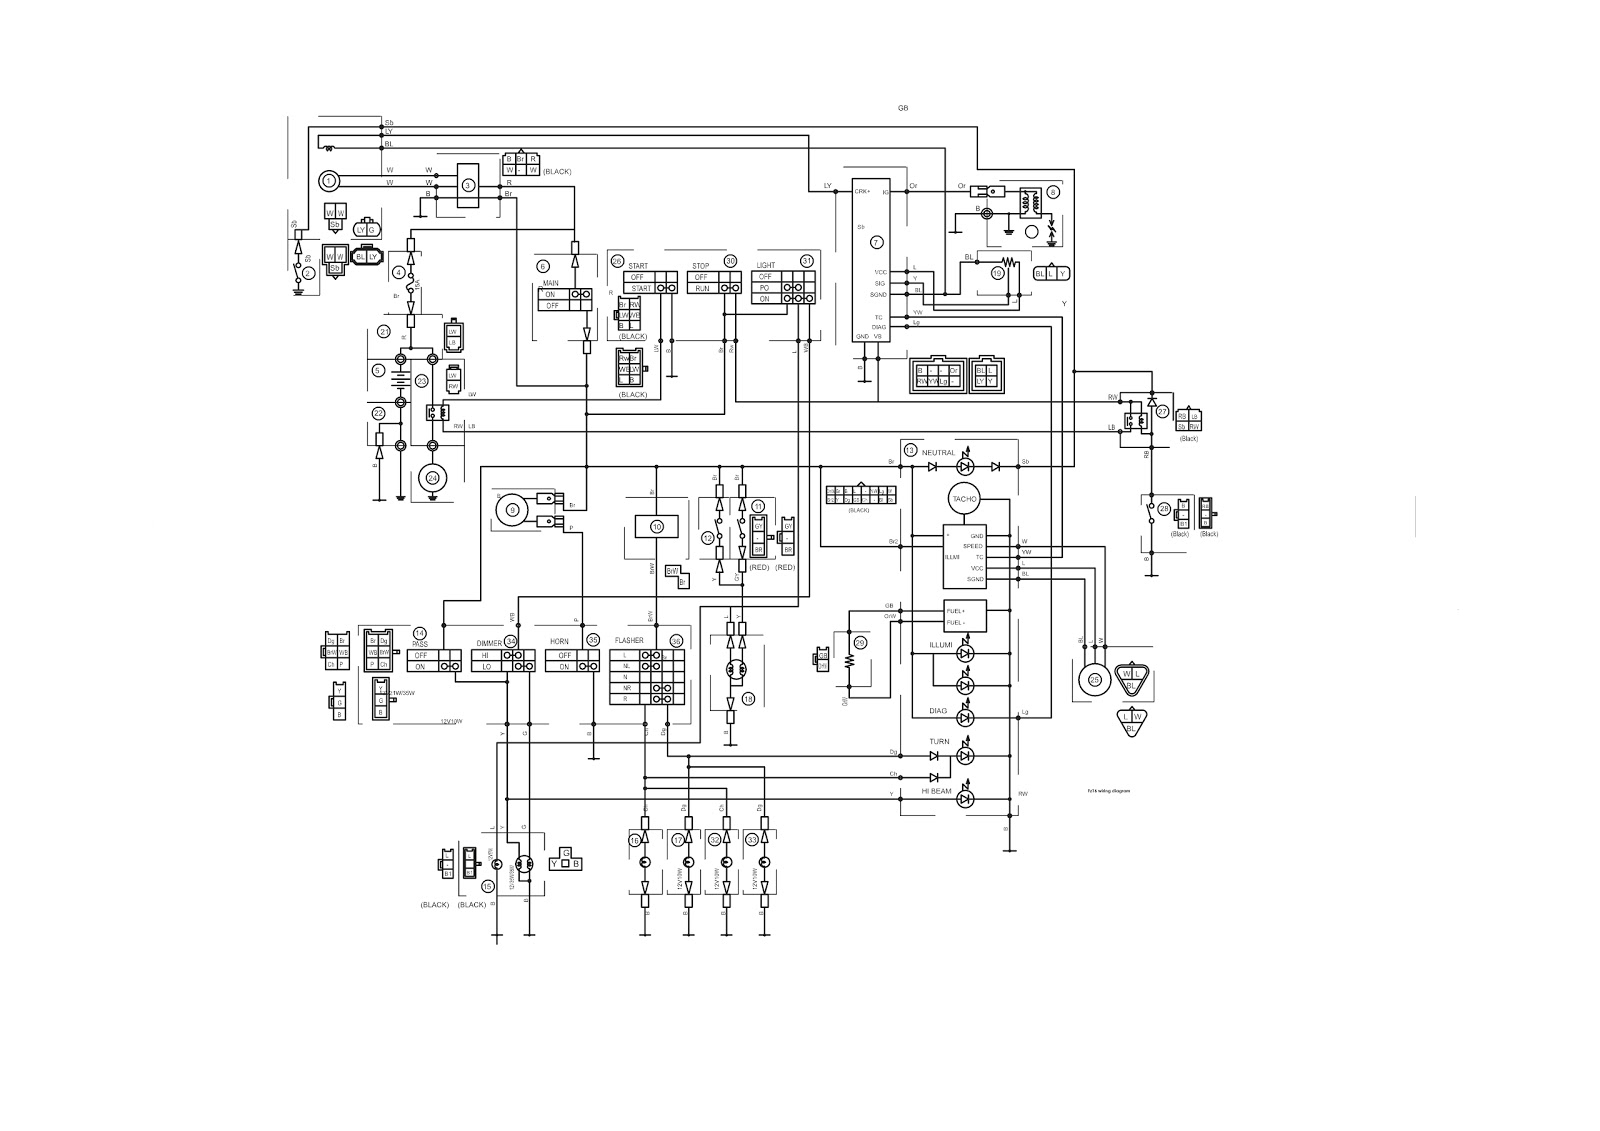 Fz700 Wiring Diagram Real Xj550 It 250 Race Bike